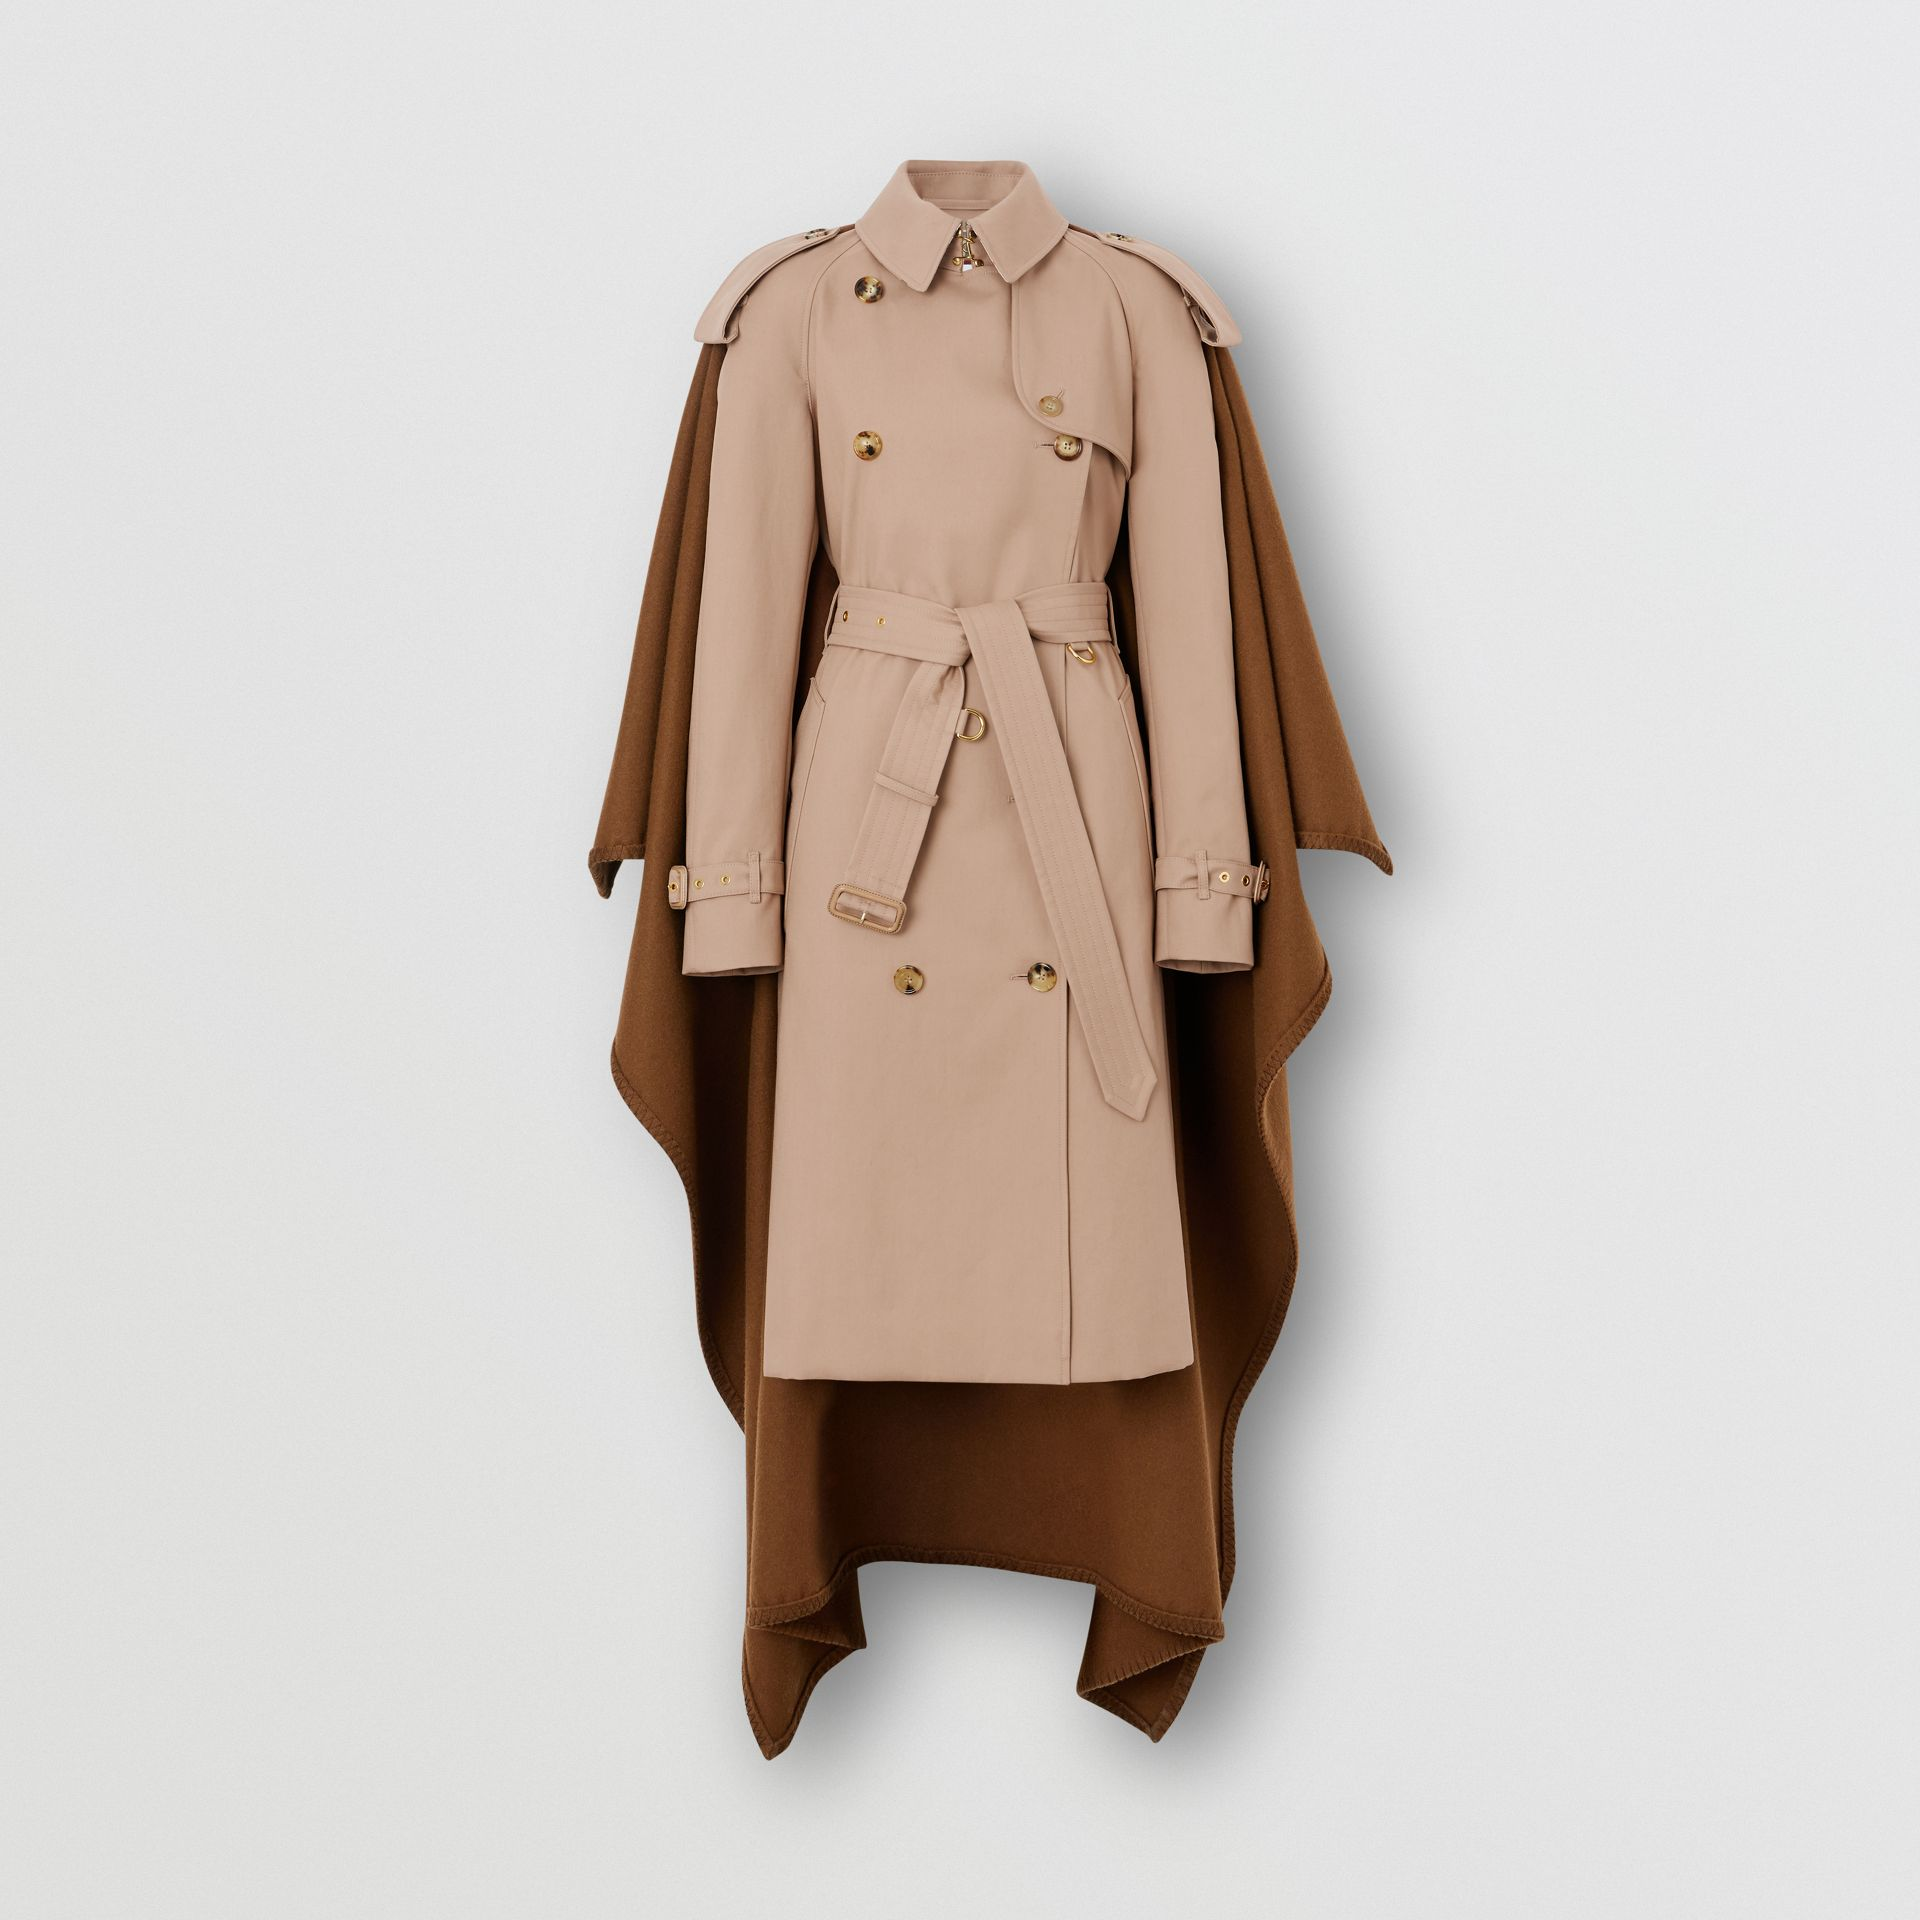 Blanket Detail Cotton Gabardine Trench Coat in Camel - Women | Burberry United States - gallery image 3